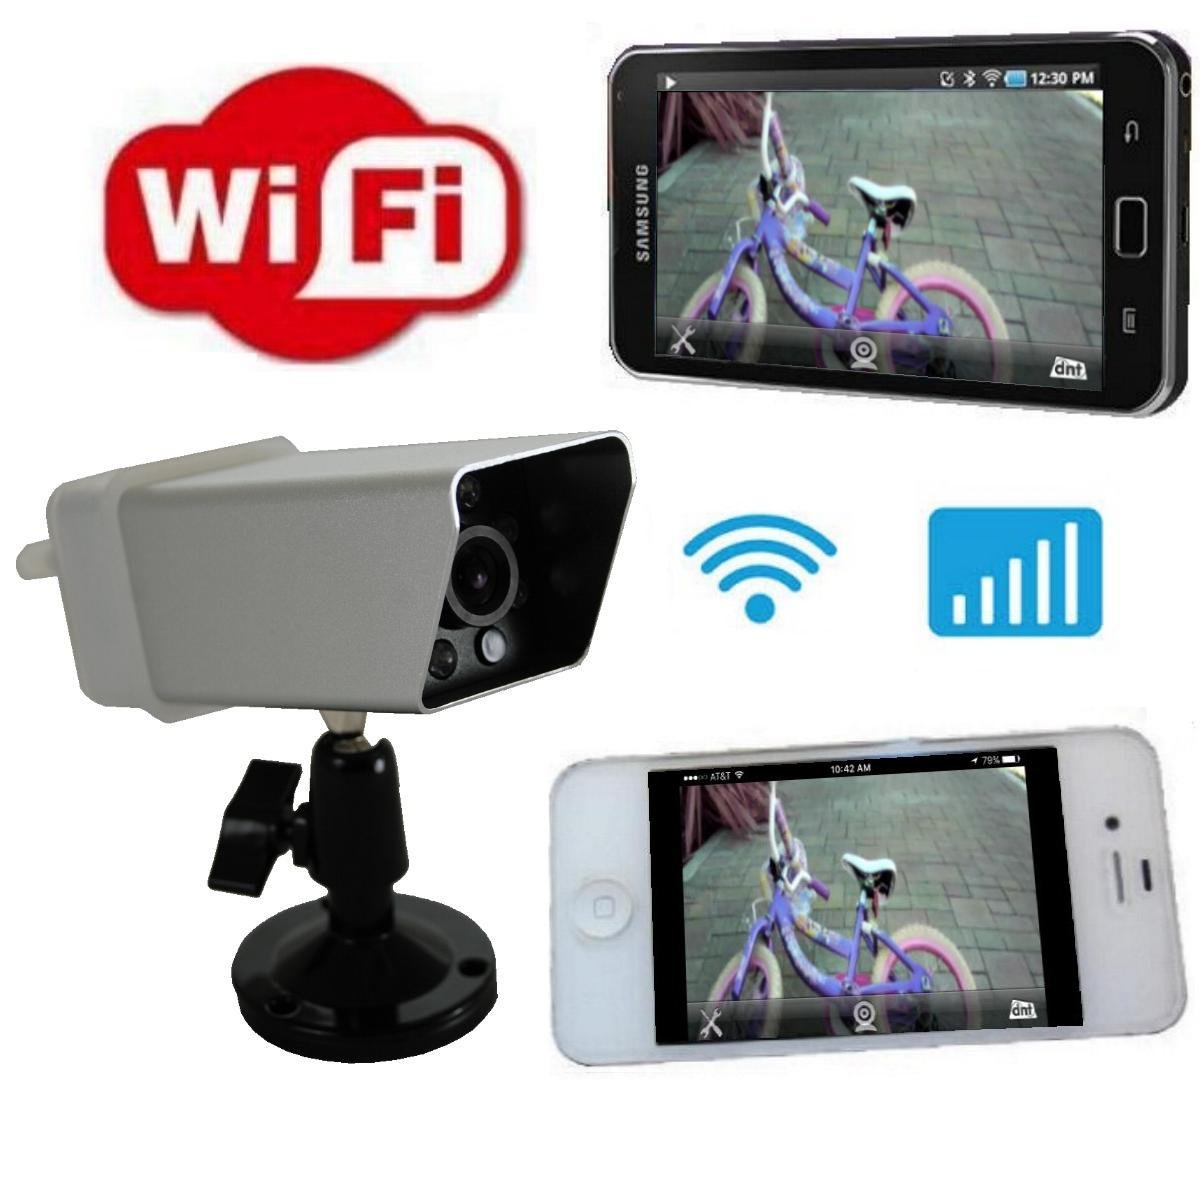 4UCam Portable WiFi Backup Camera for iPhone/iPad and Android by 4UCam (Image #6)